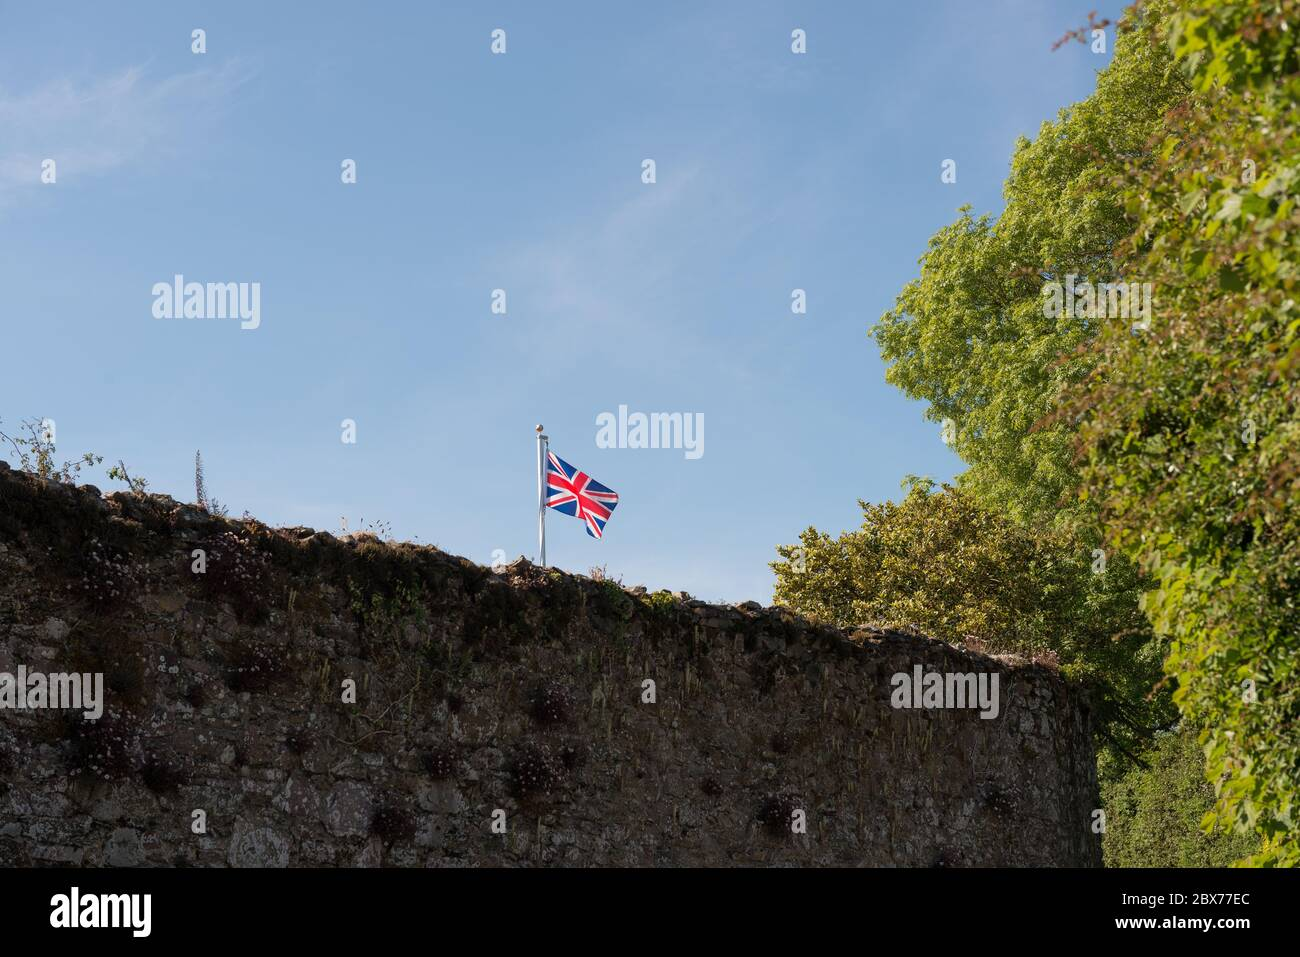 Single red, white and blue Union Flag of the United Kingdom flying from pole above stone wall against background of blue sky. Stock Photo